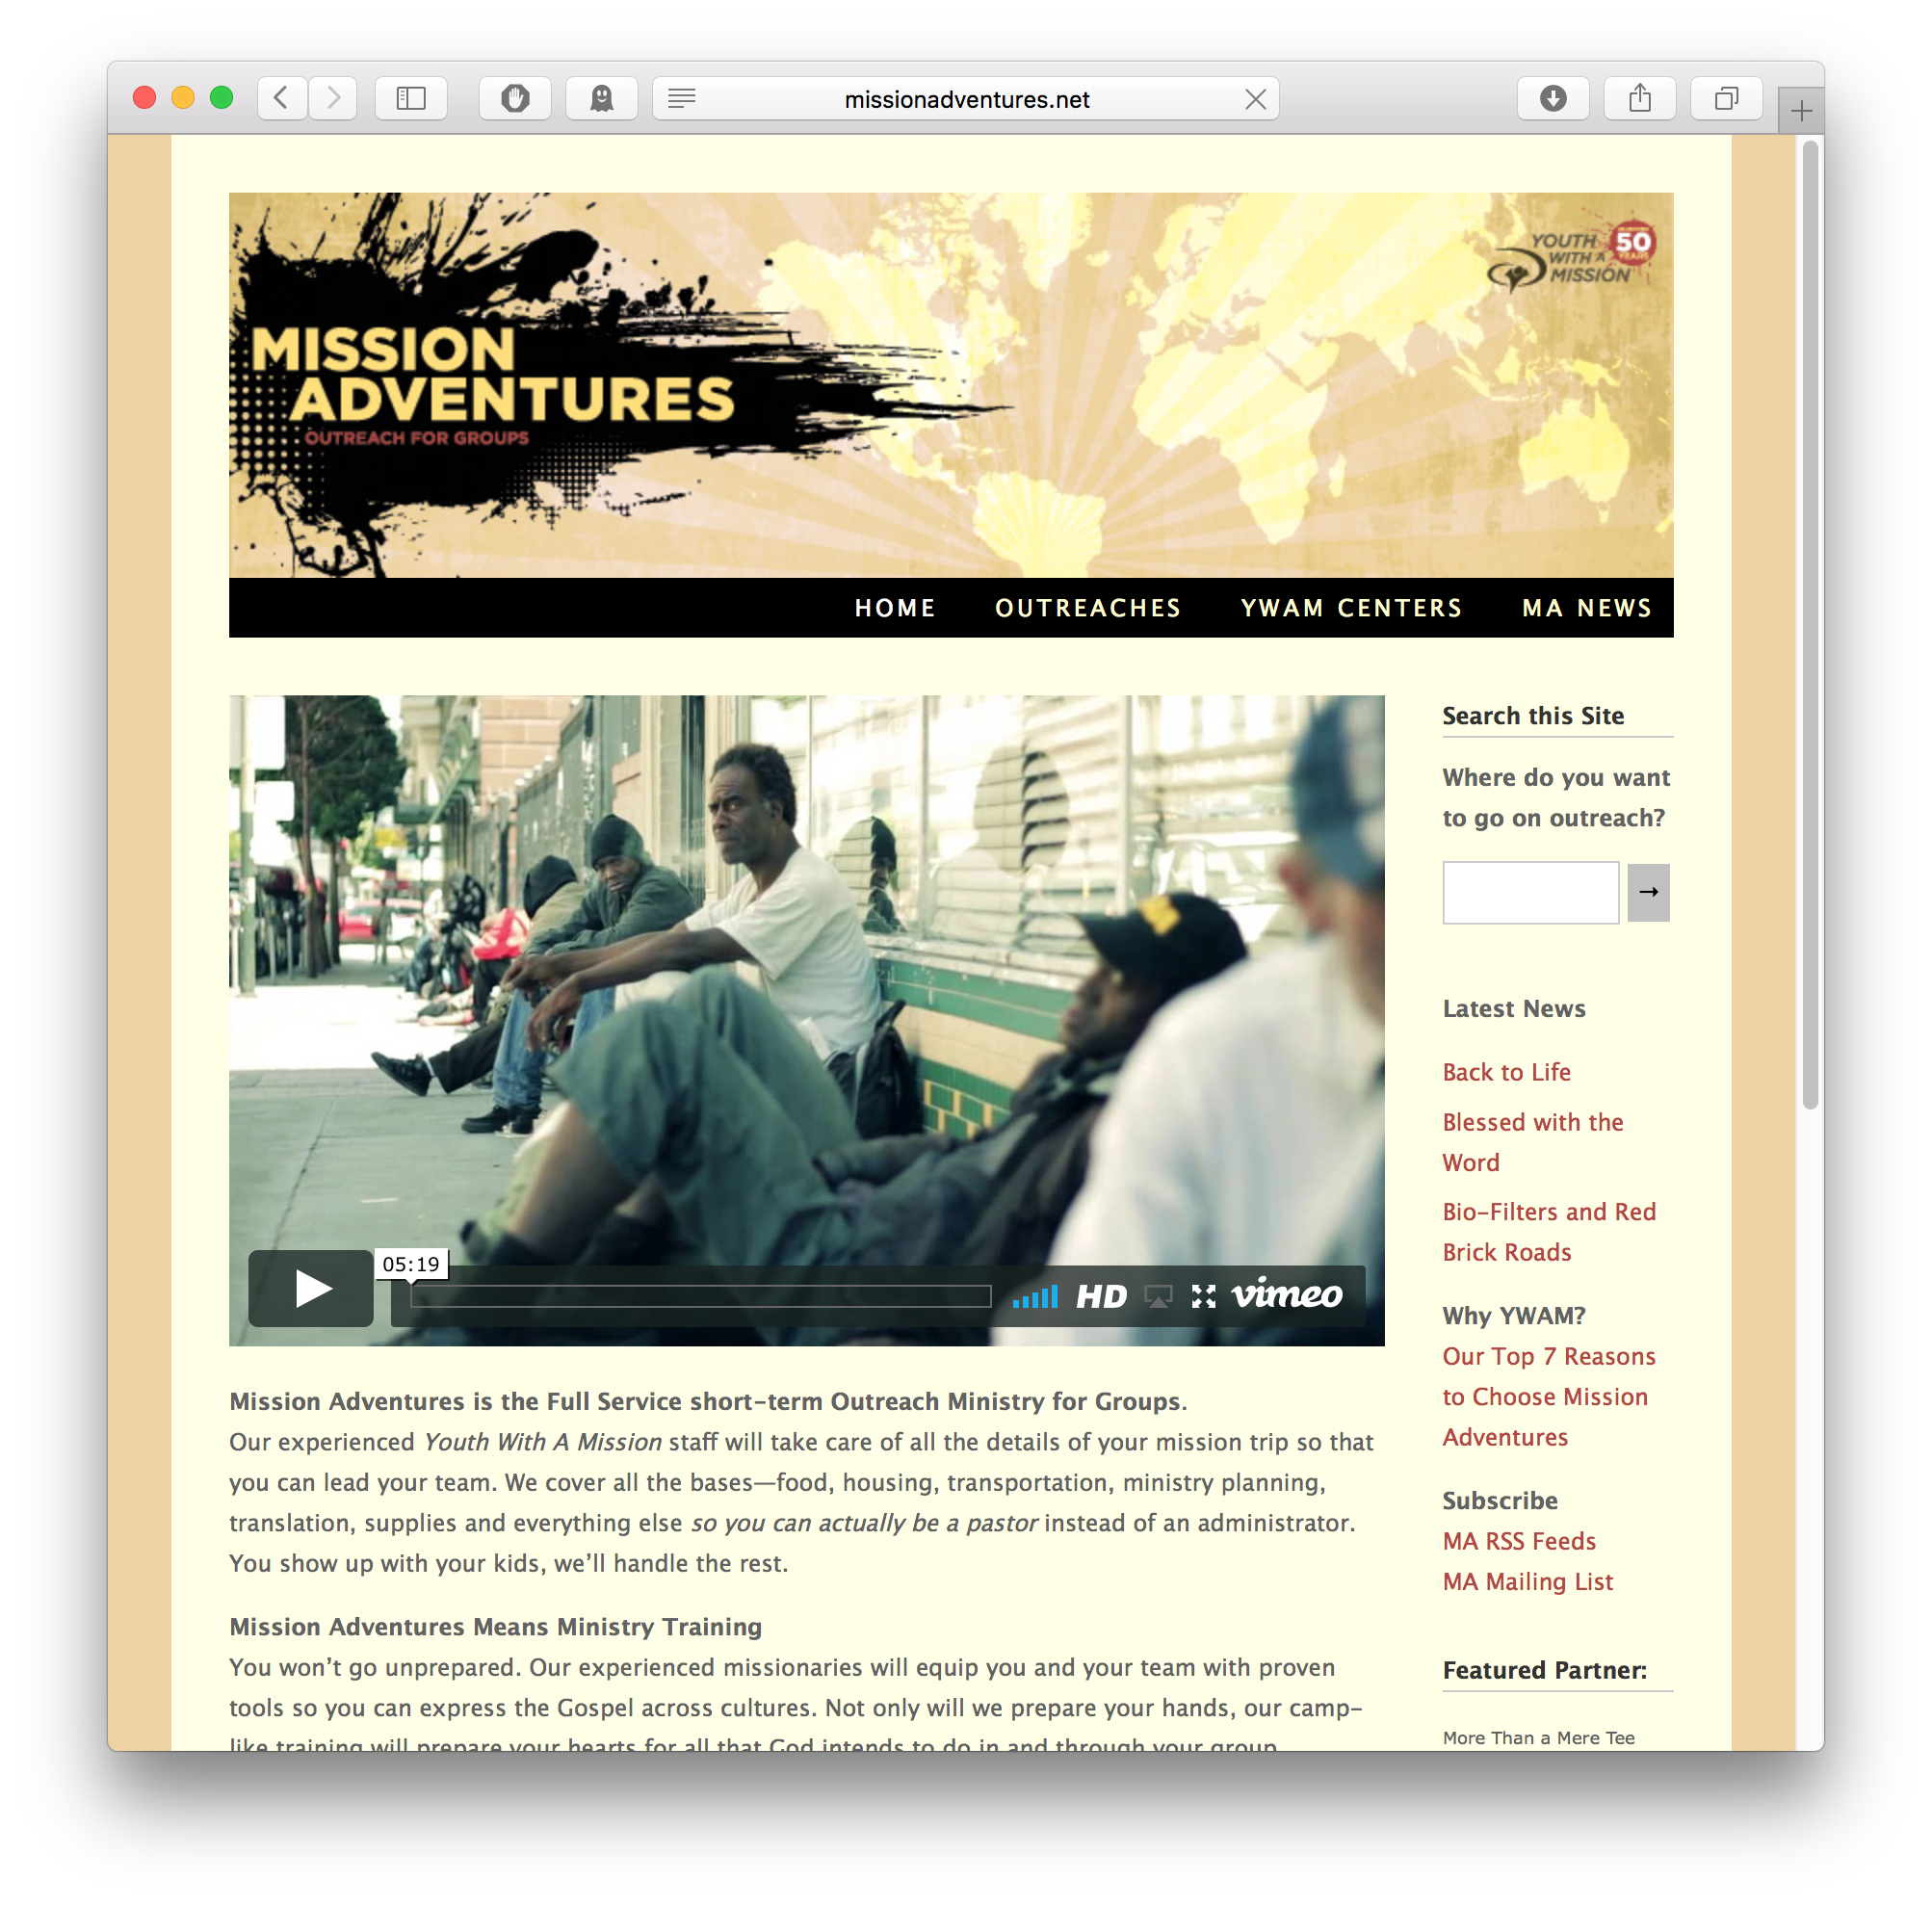 Youth Workers, visit the Mission Adventures site!